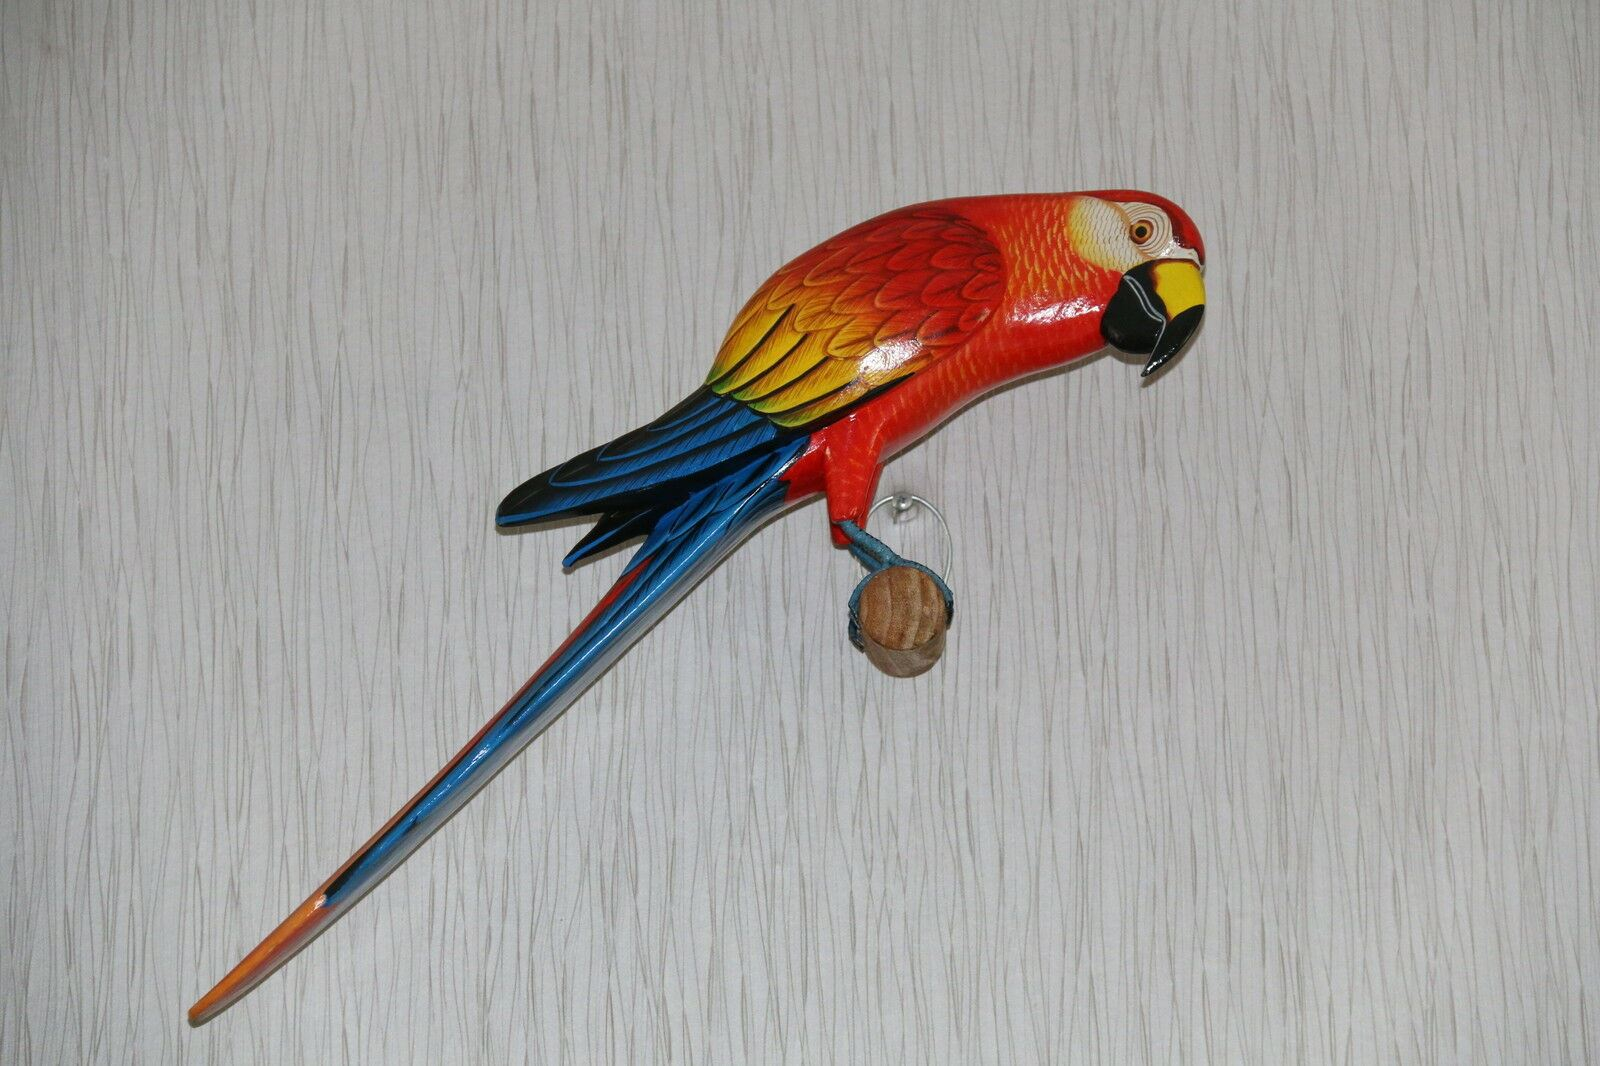 NEW Bali Hand Carved Macaw on Perch - Bali Bird Wall Art - Hand Crafted Macaw